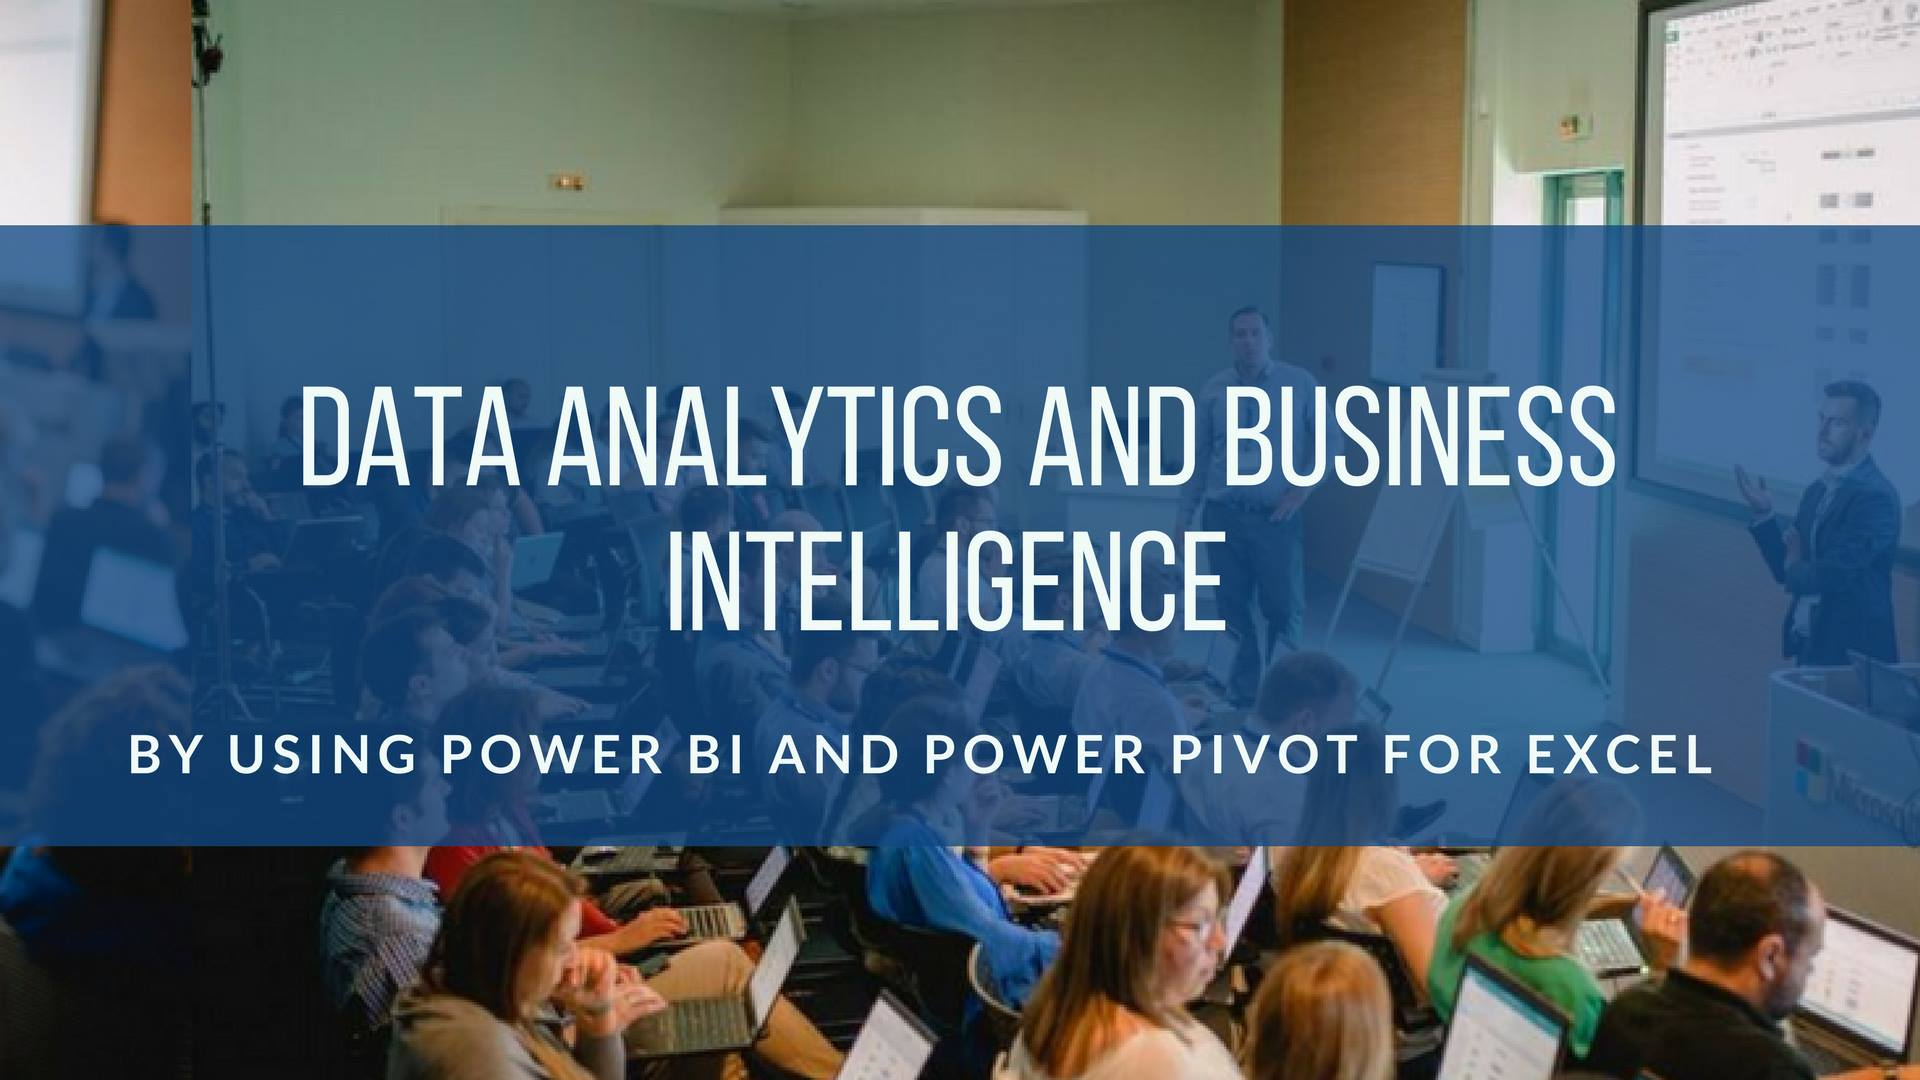 Data Analytics and Business Intelligence Power BI & Power Pivot for Excel